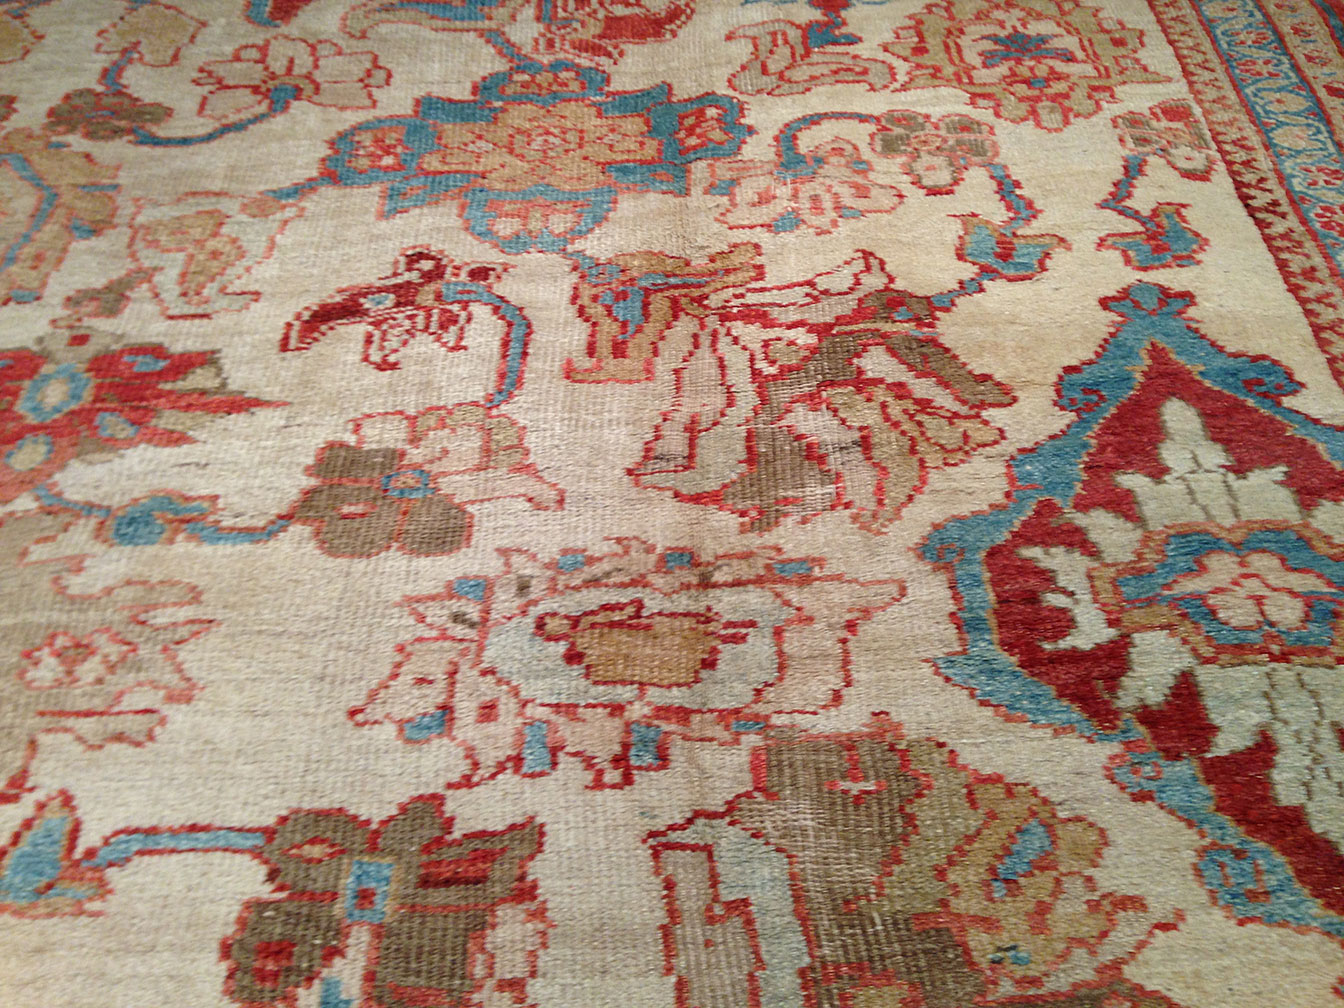 Antique sultan abad Carpet - # 9810